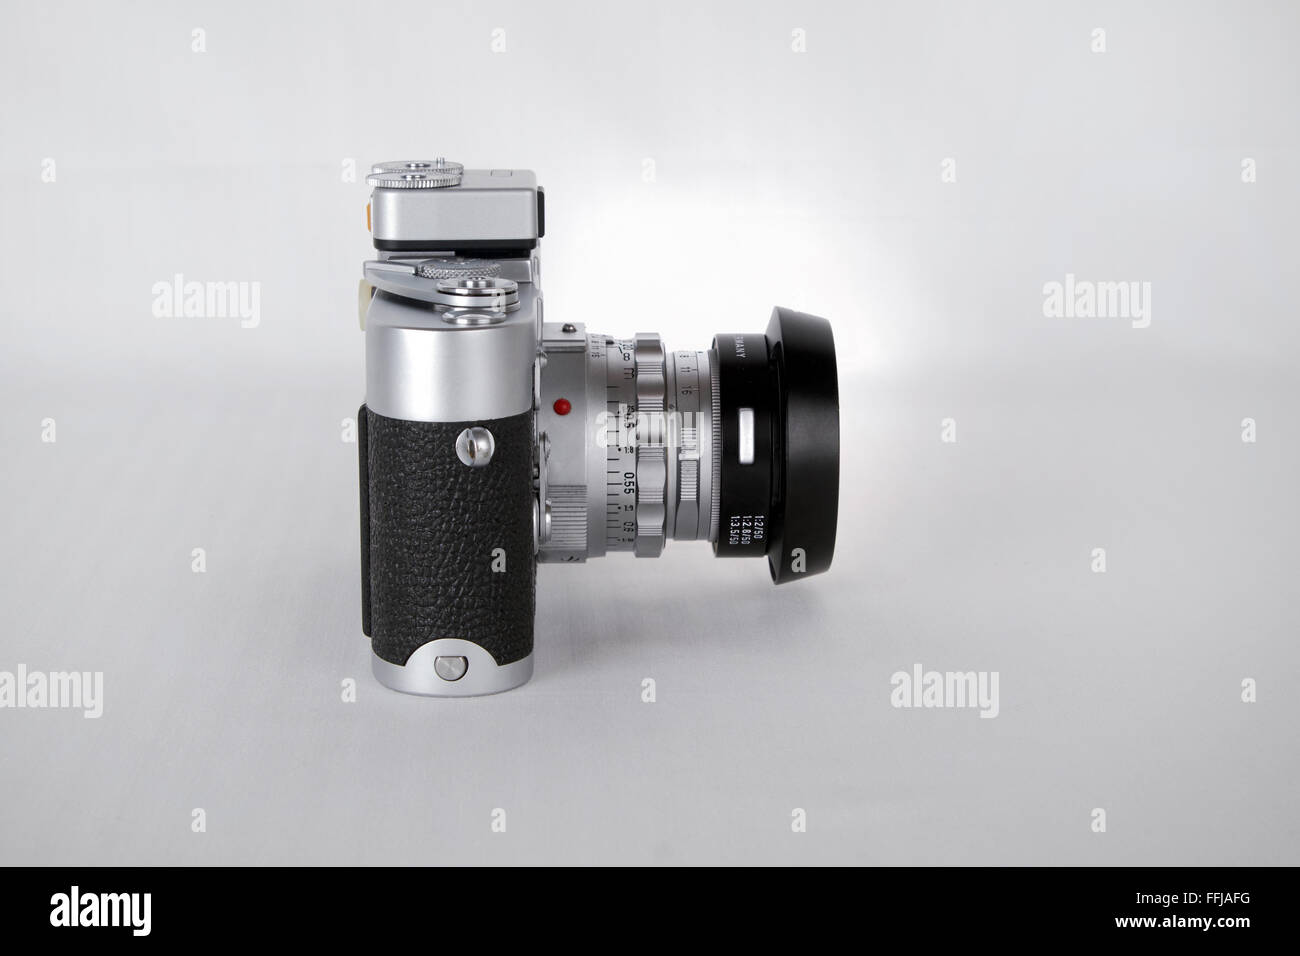 vintage Leica M3 film camera against a white background. Stock Photo